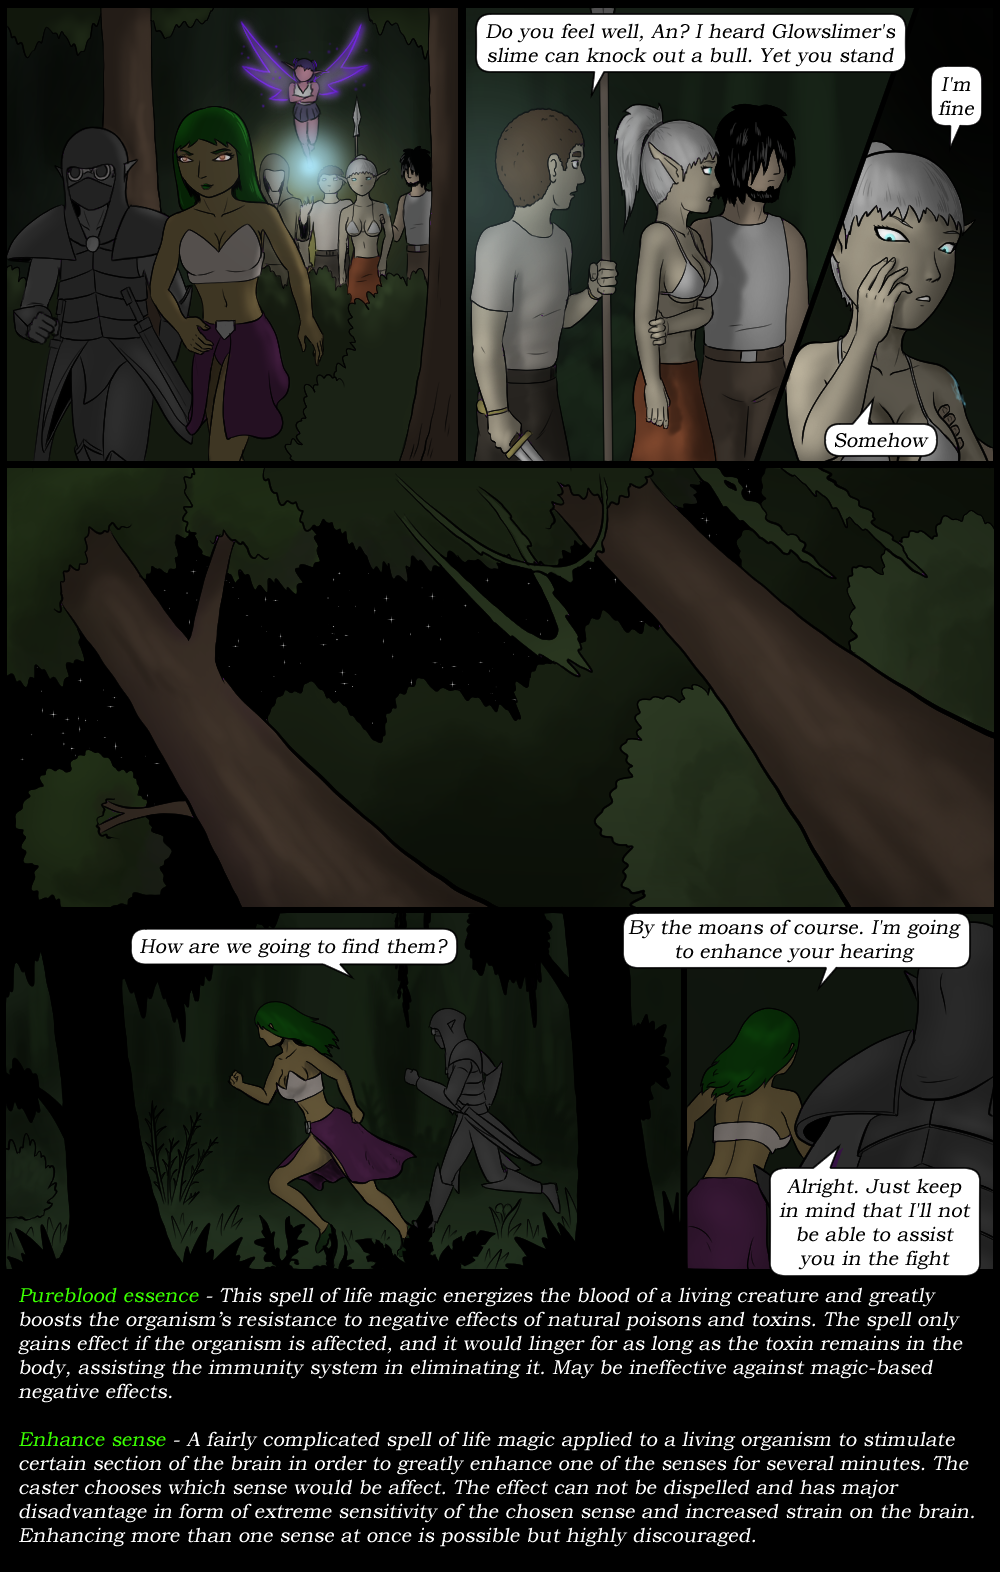 Page 30 - The search begins